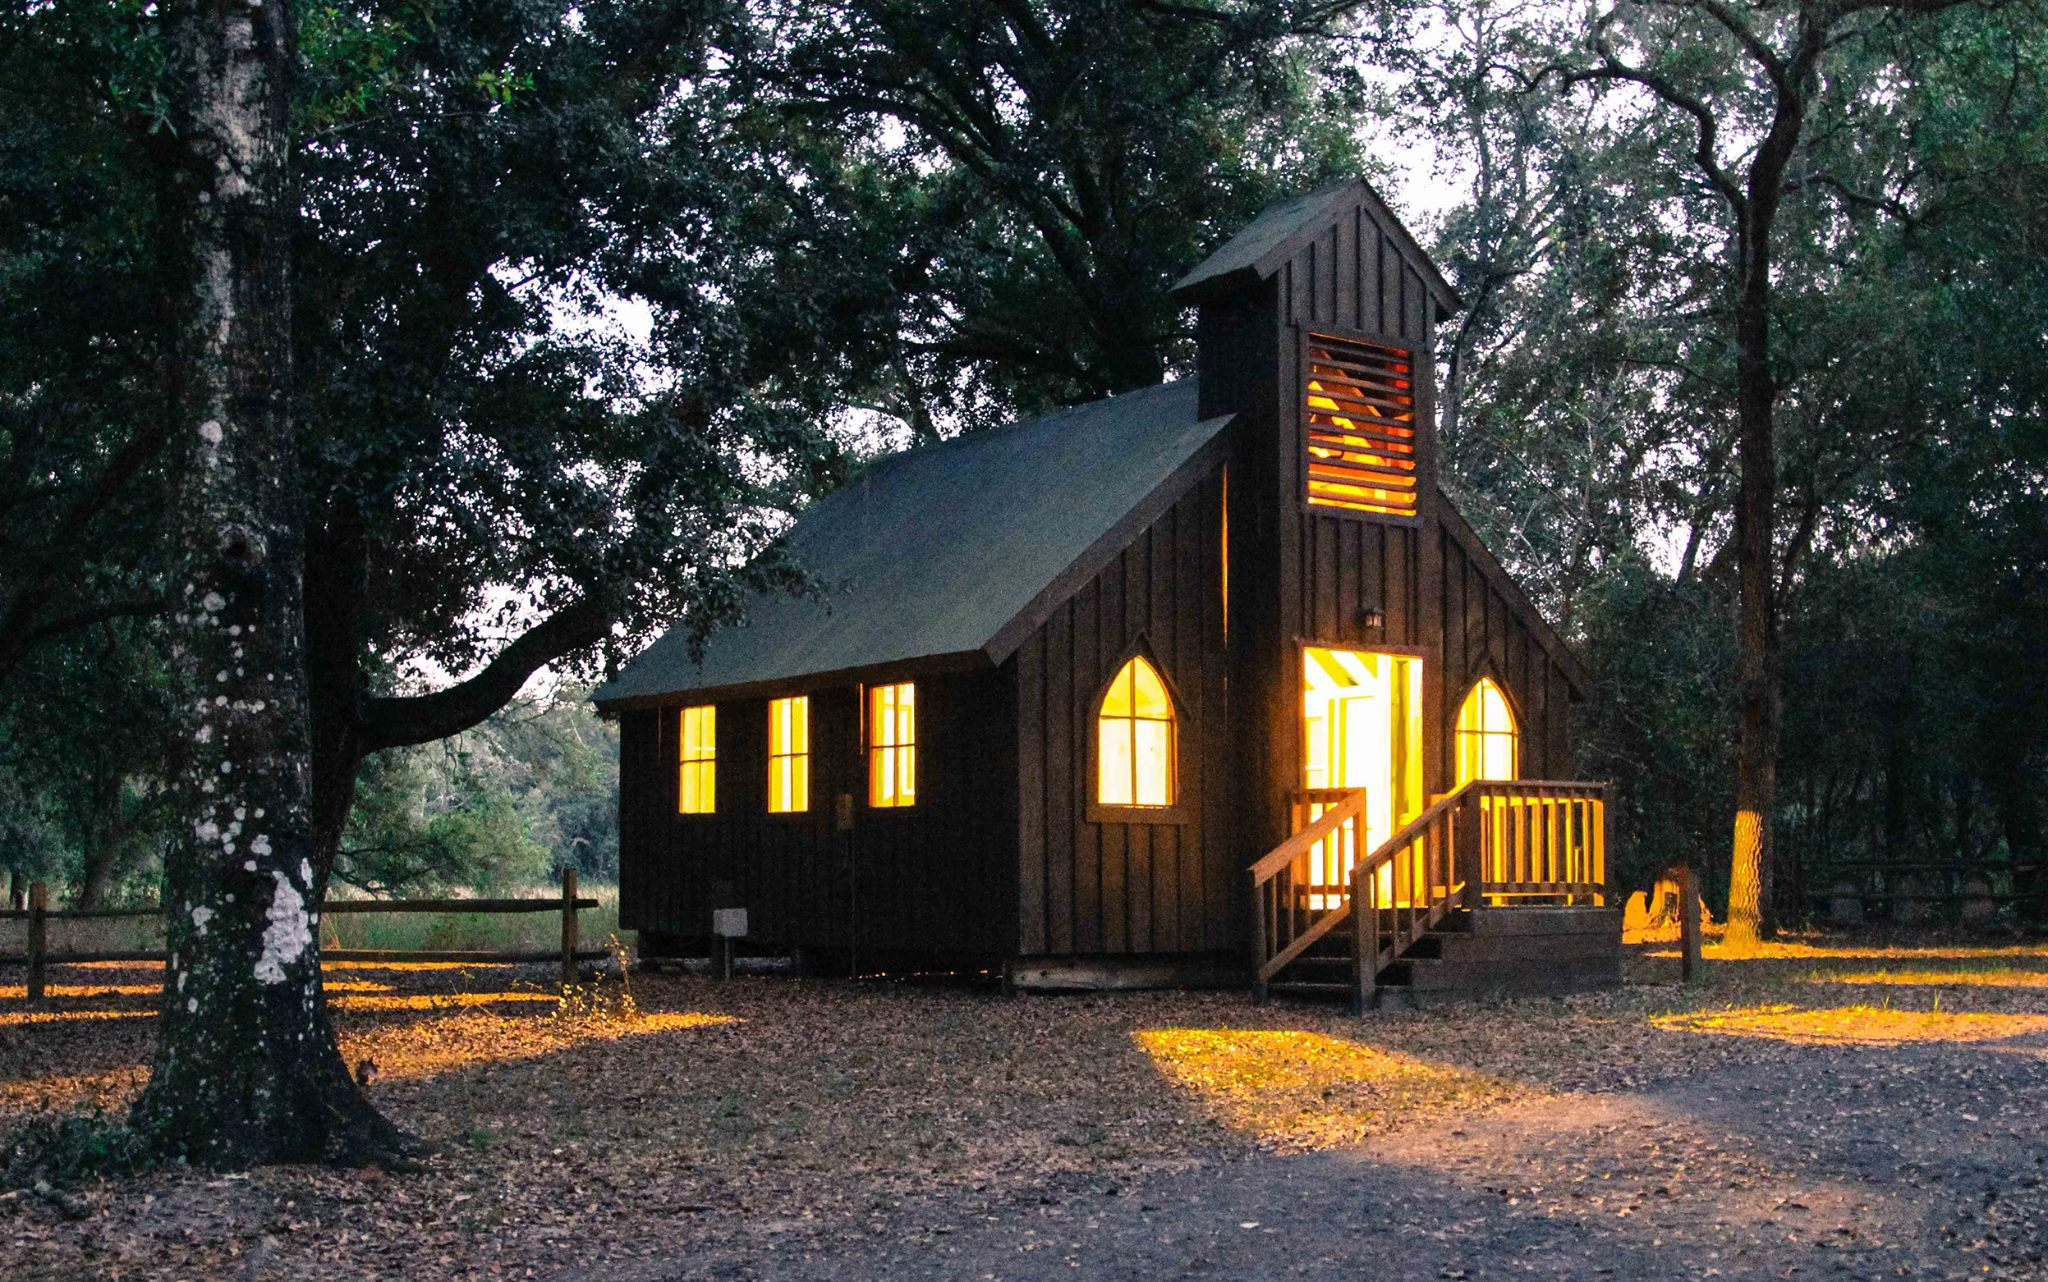 With no doors to close, this little chapel in the woods welcomed all.